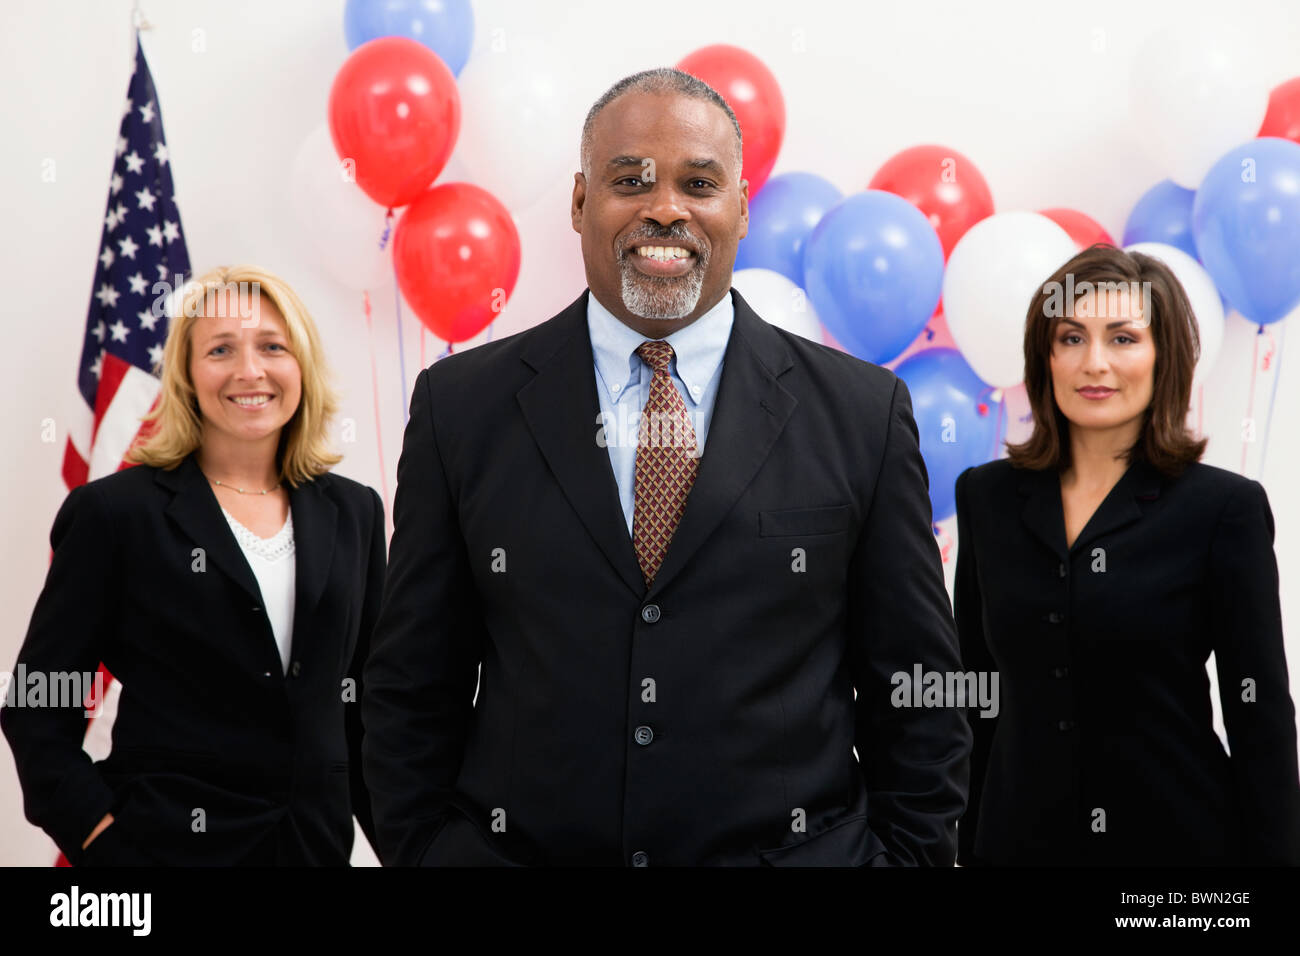 USA, Illinois, Metamora, Portrait of politicians in front of US flag and balloons - Stock Image